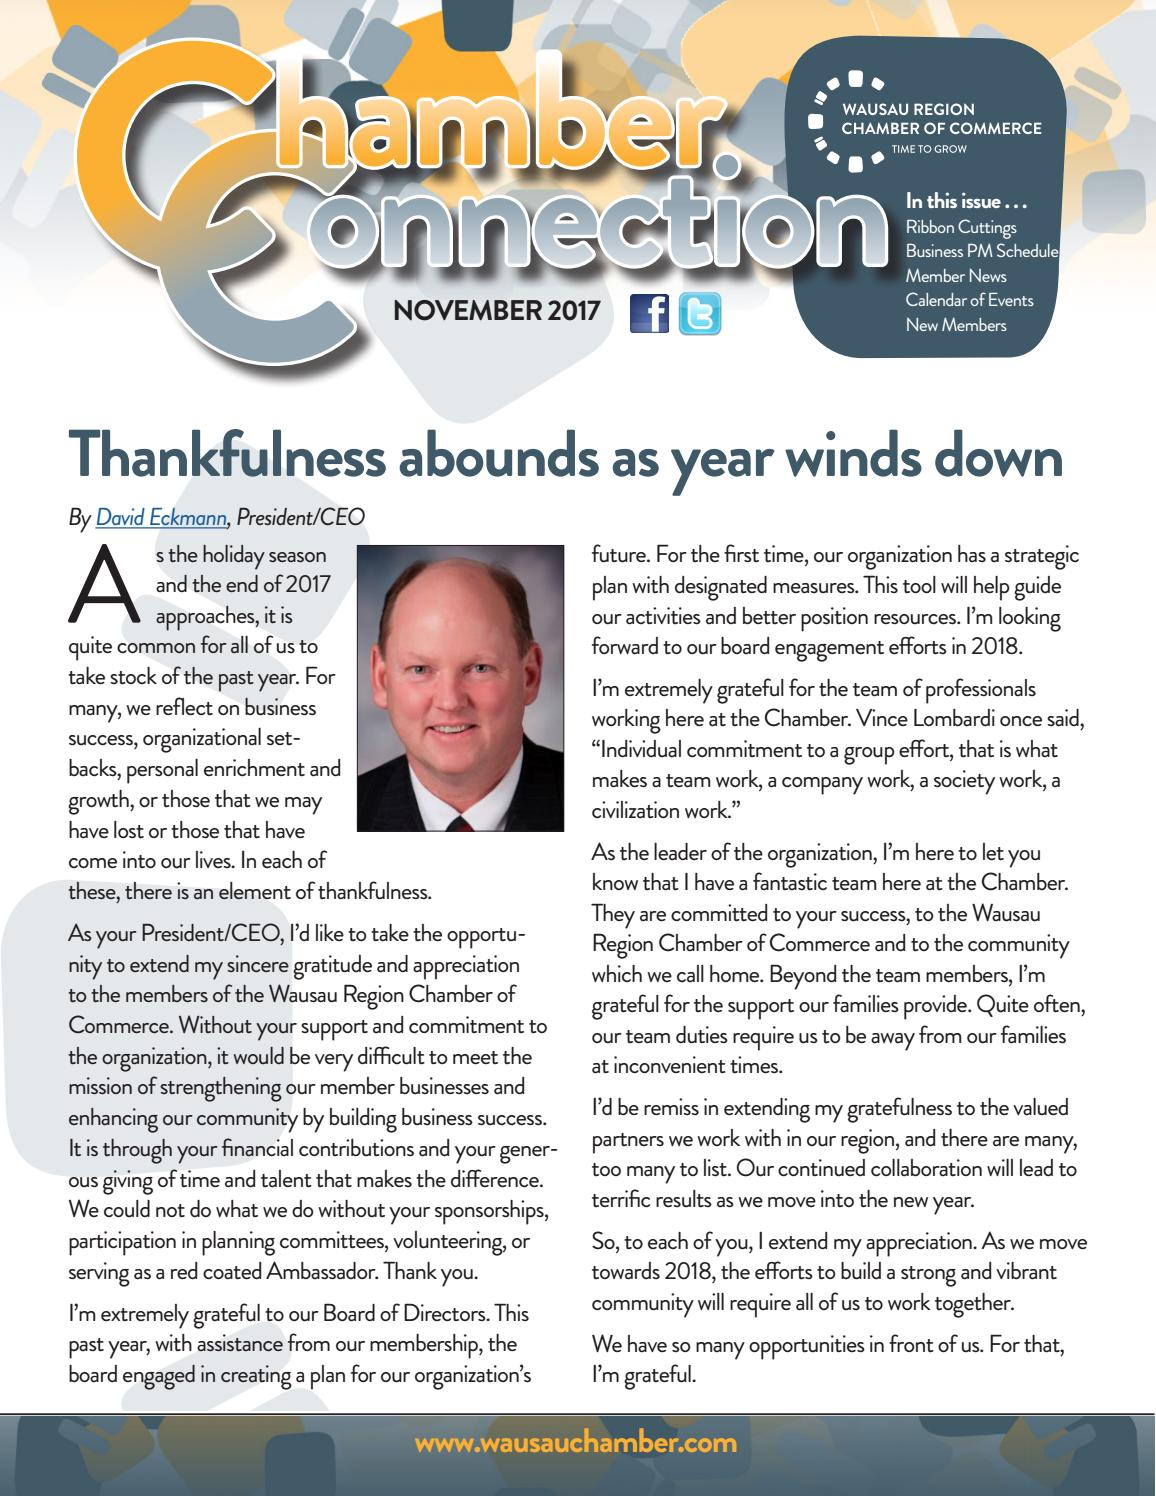 Chamber Connection November 2017 By Wausau Region